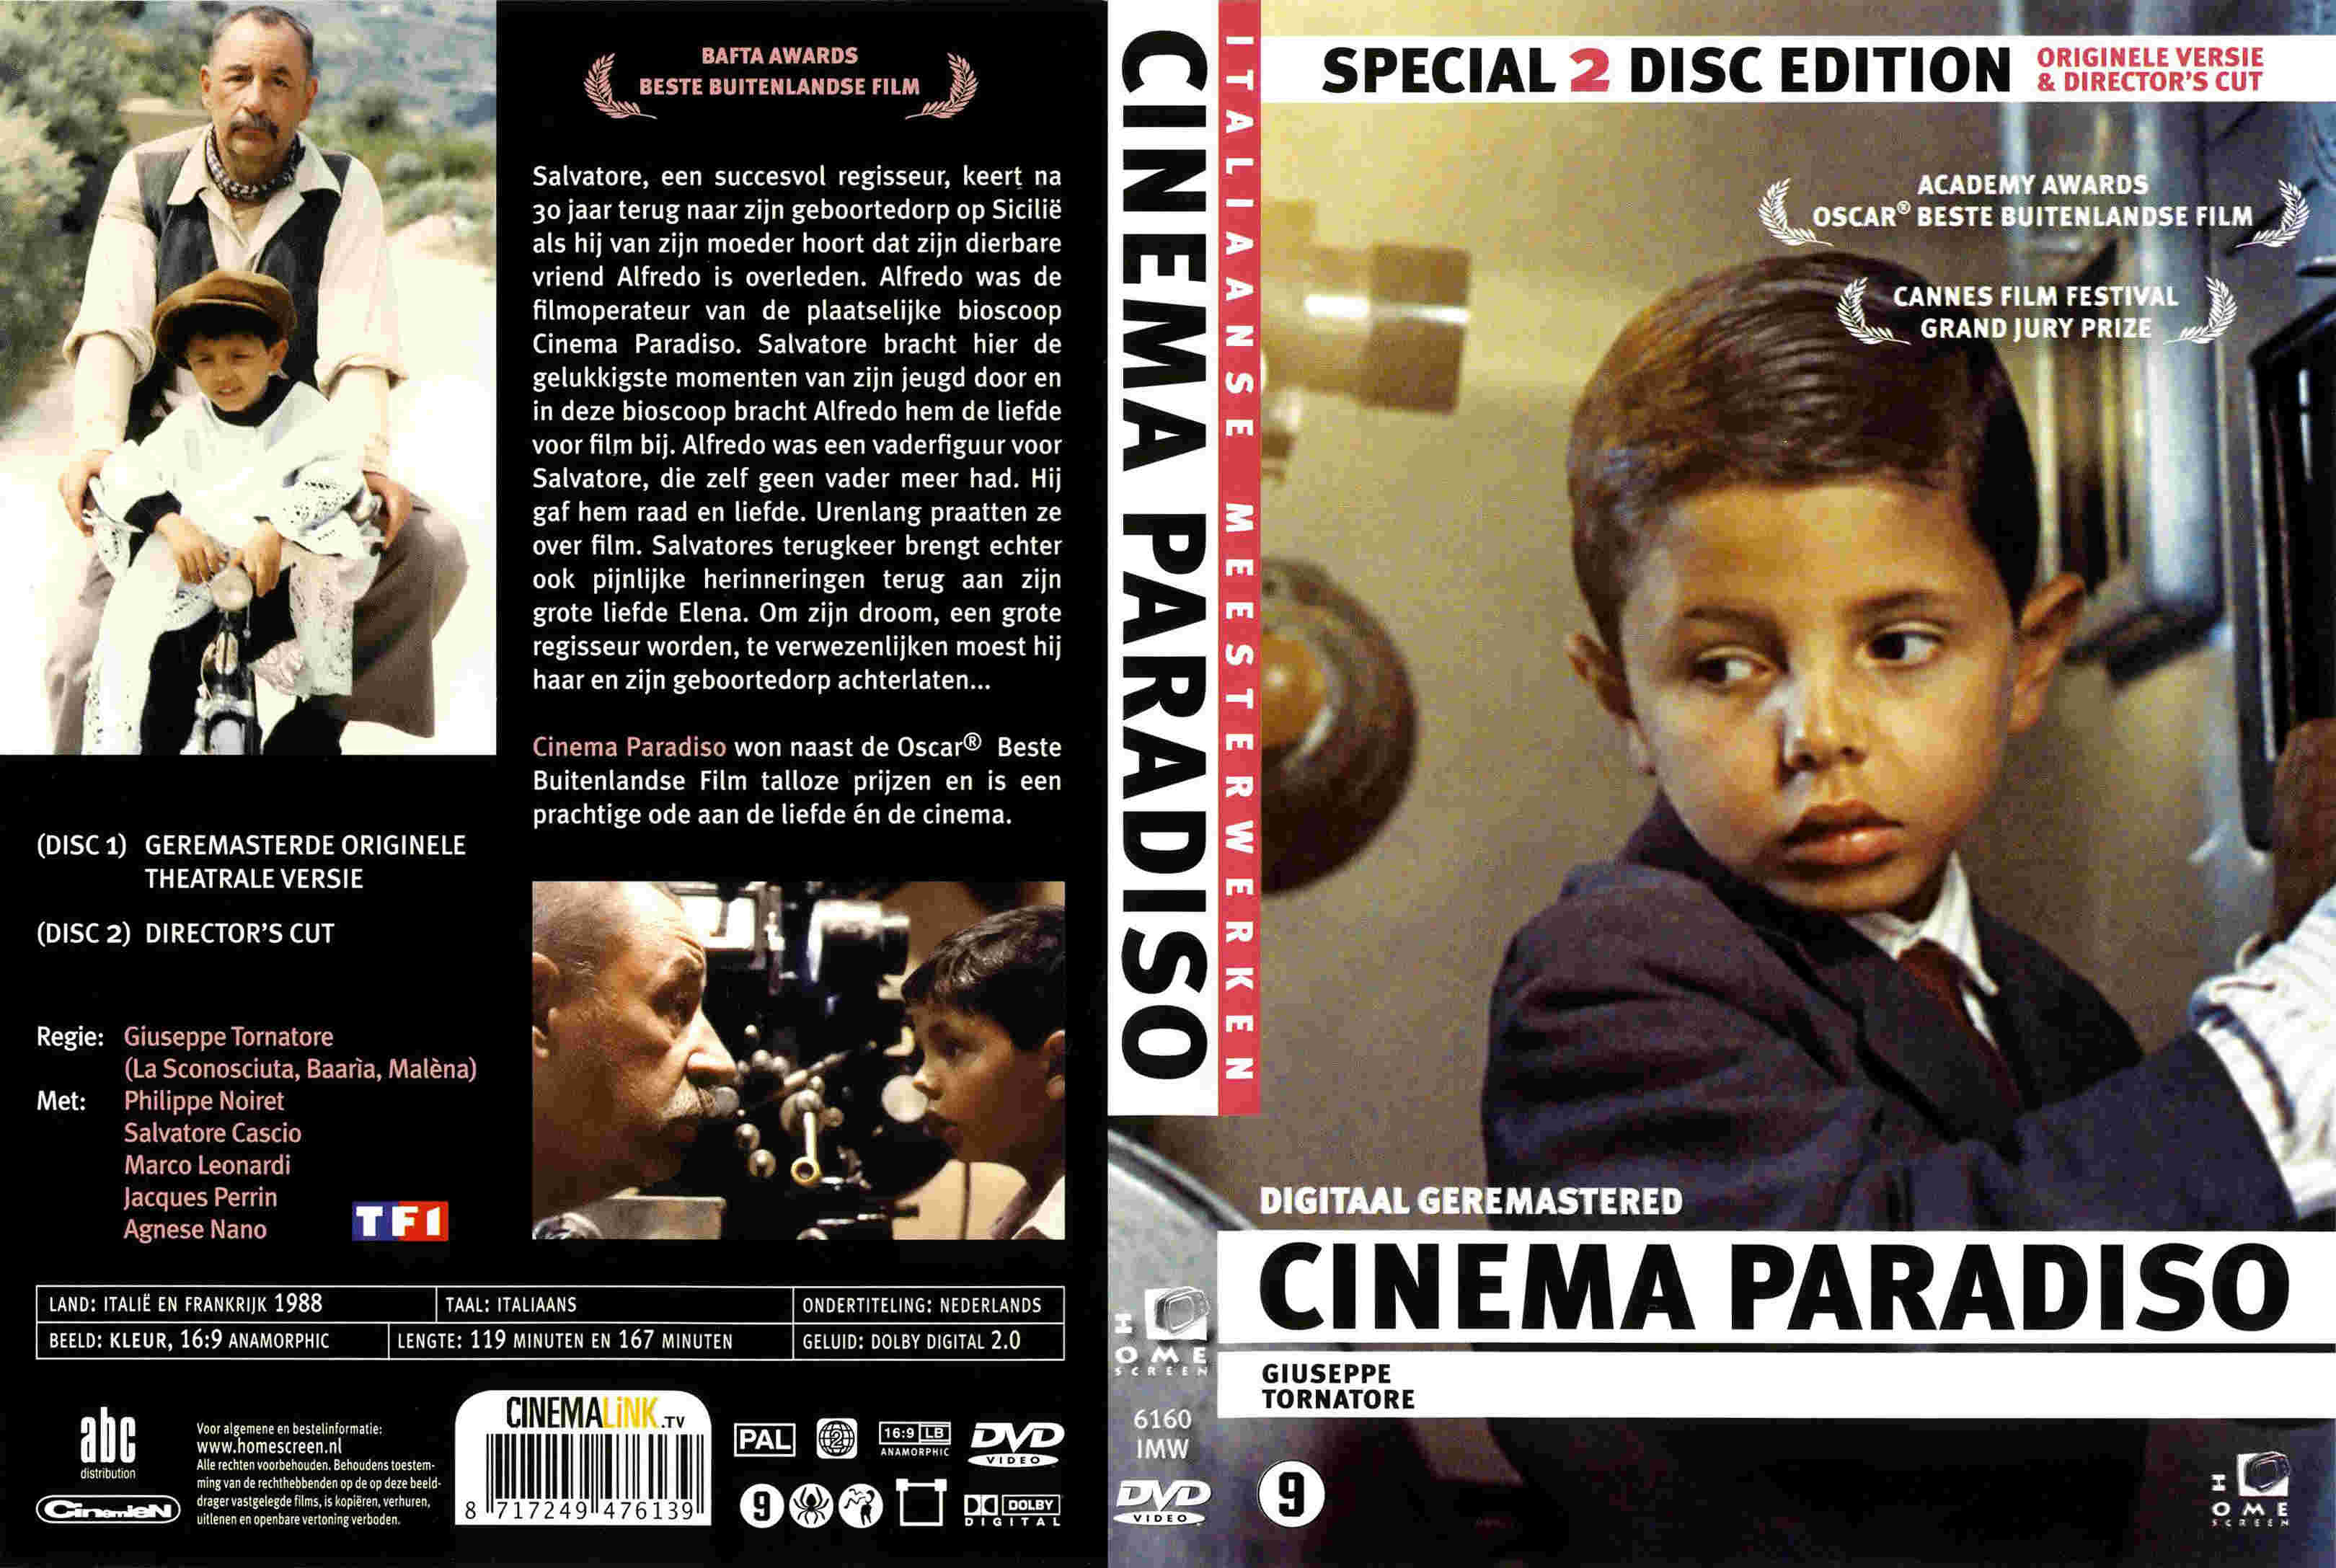 cinema paradiso Listen to songs from the album cinema paradiso (original soundtrack recording), including cinema paradiso, maturity, while thinking about her again, and many more.